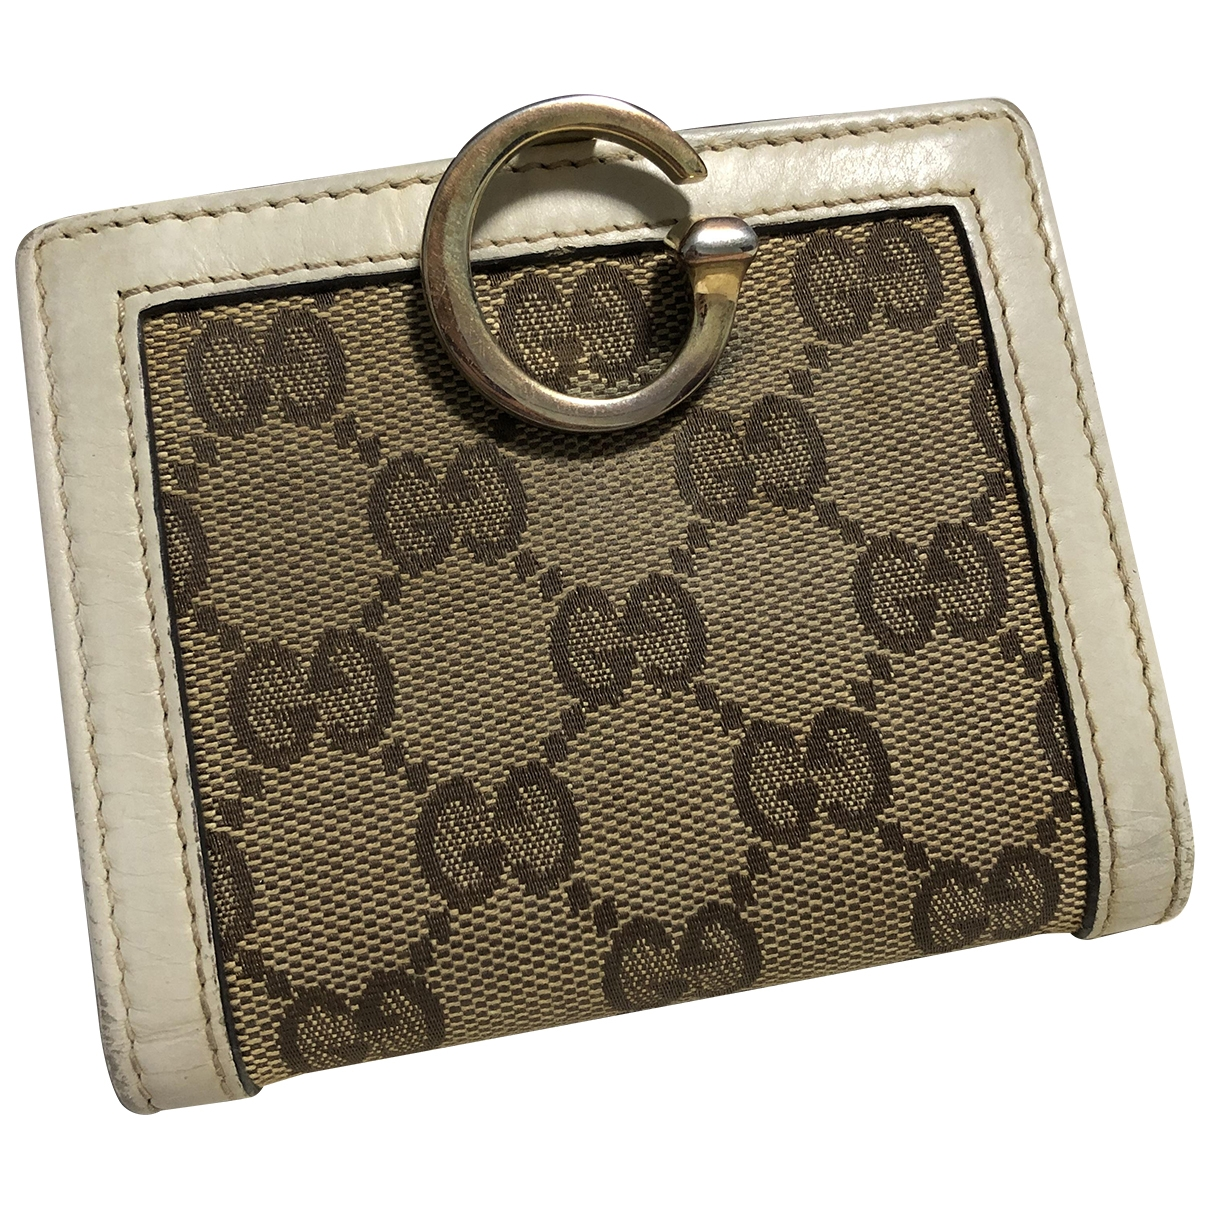 Gucci \N White Leather wallet for Women \N